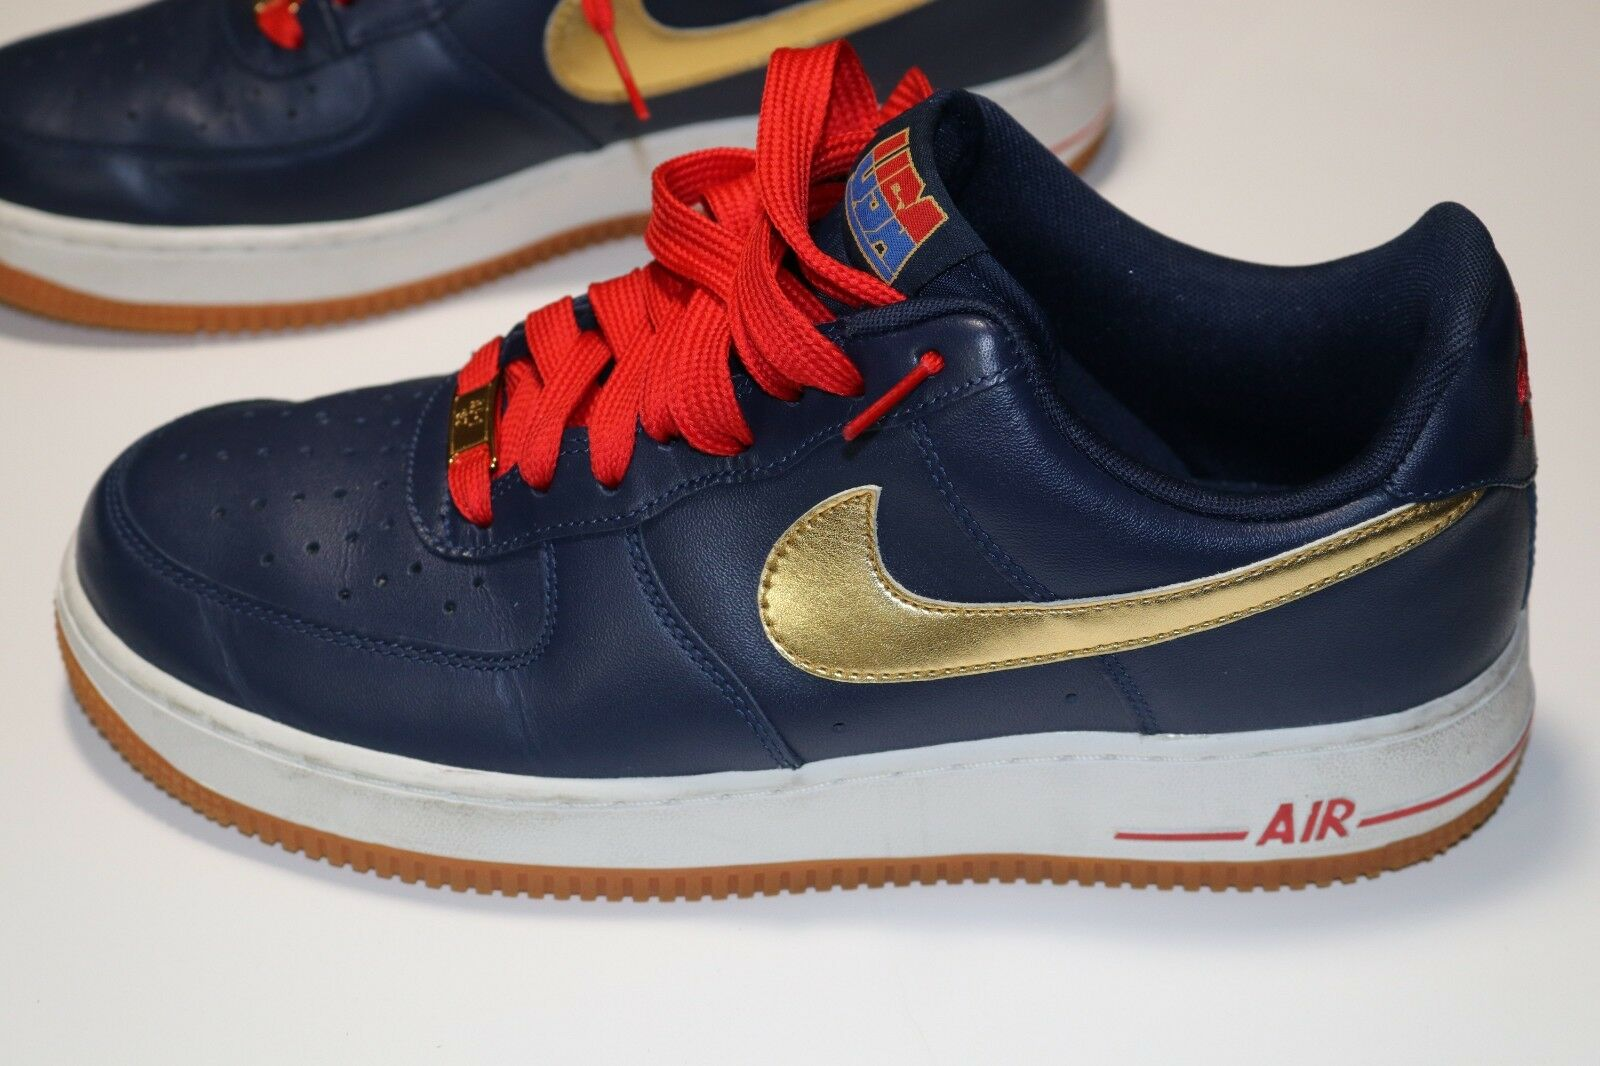 Nike Air Force 1 USA Olympic 2012 Men's Midnight Navy gold 488298-406 shoes  8.5